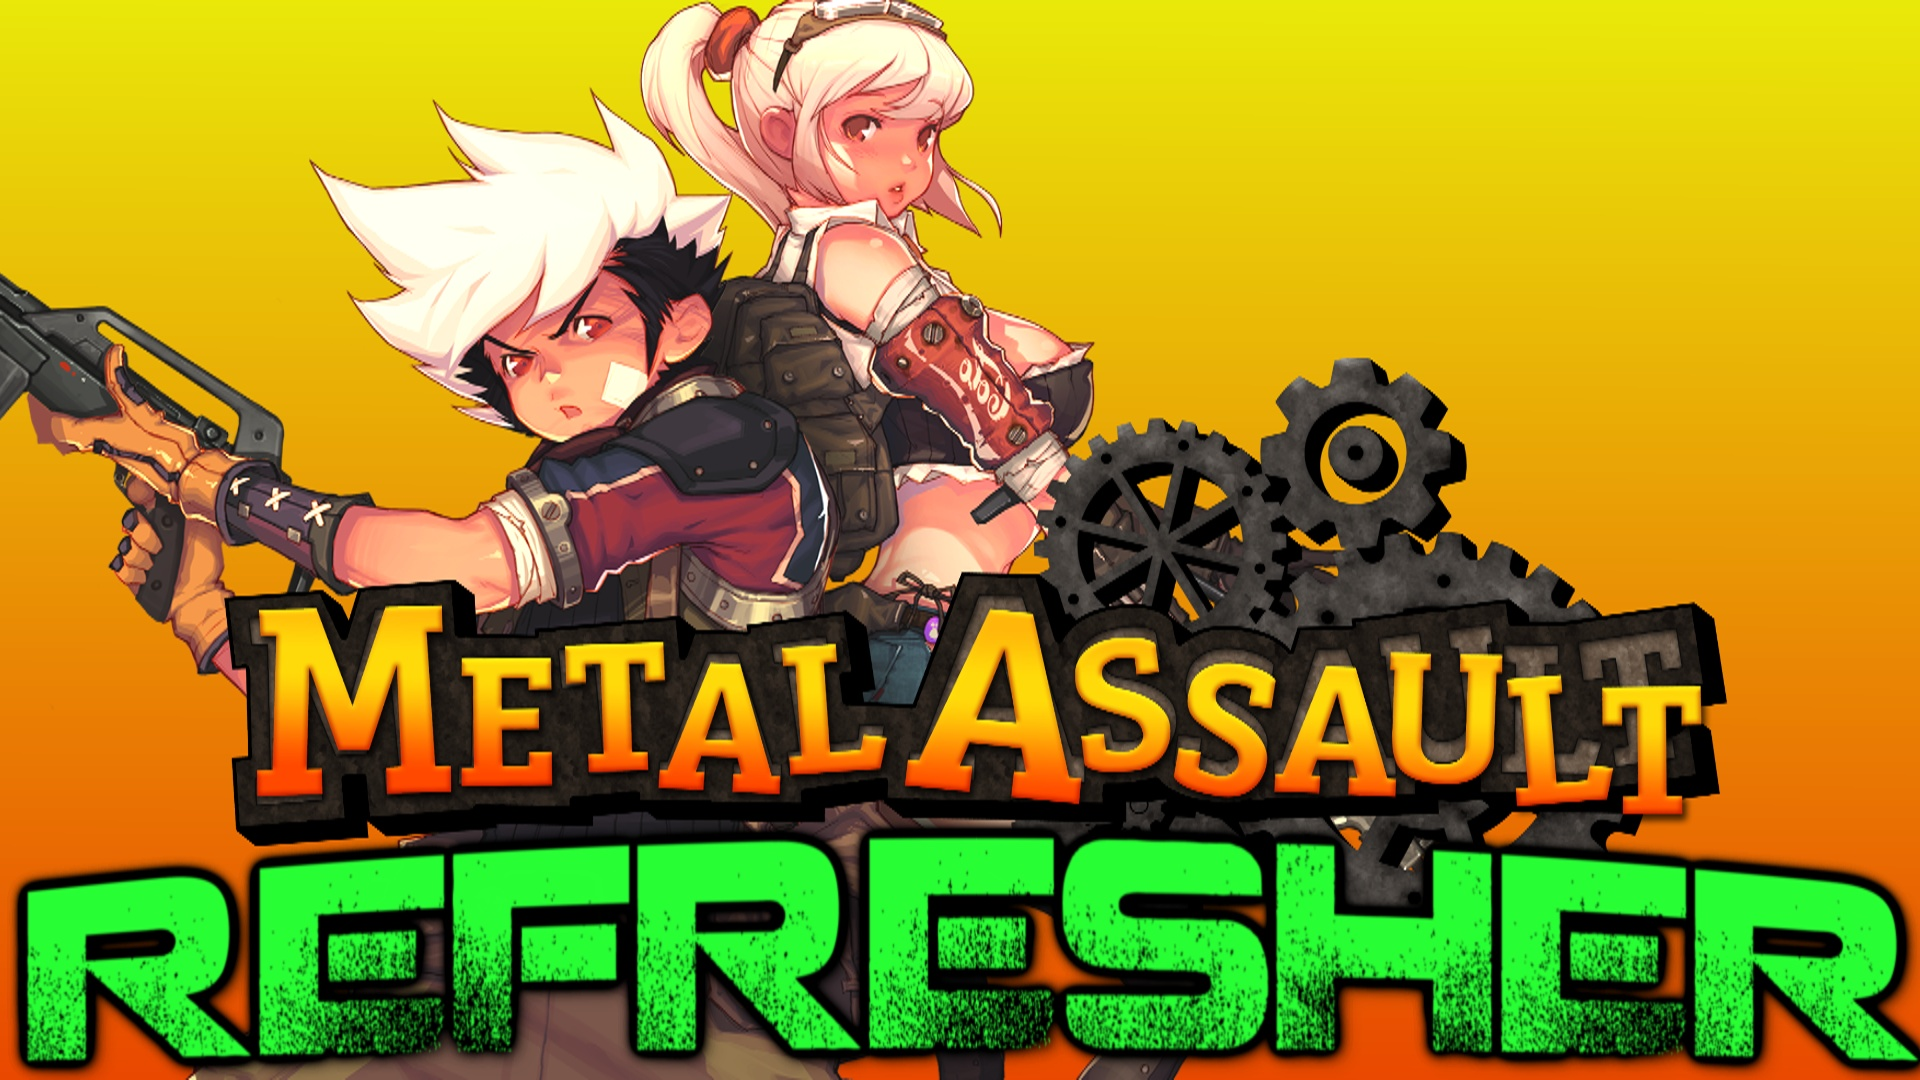 BakermanBrad takes a crack at the recently resurrected 2D side-scroller shoot'em up known as Metal Assault!